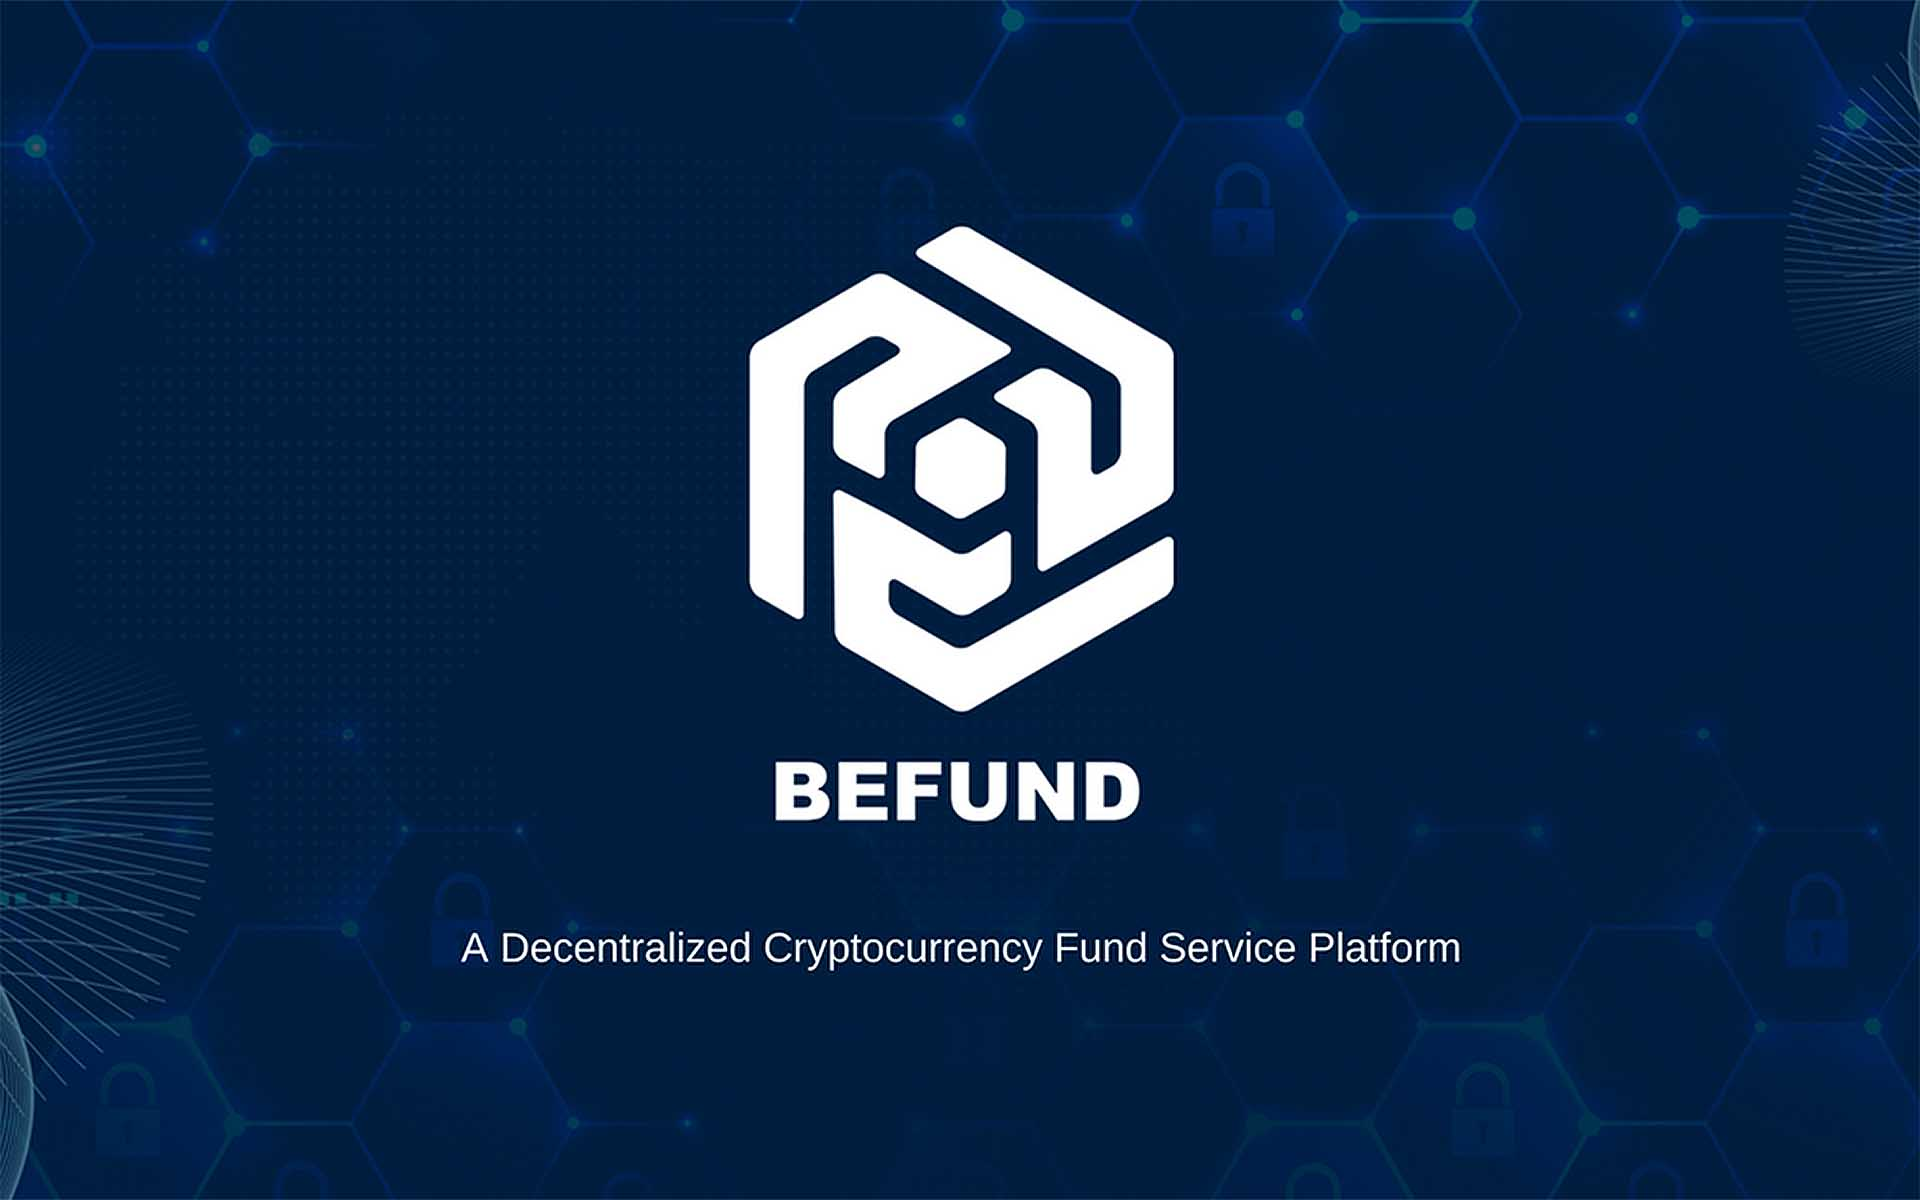 Befund Service Platform Announces Support from Daos Capital as They Prepare to Launch Their Crowdsale